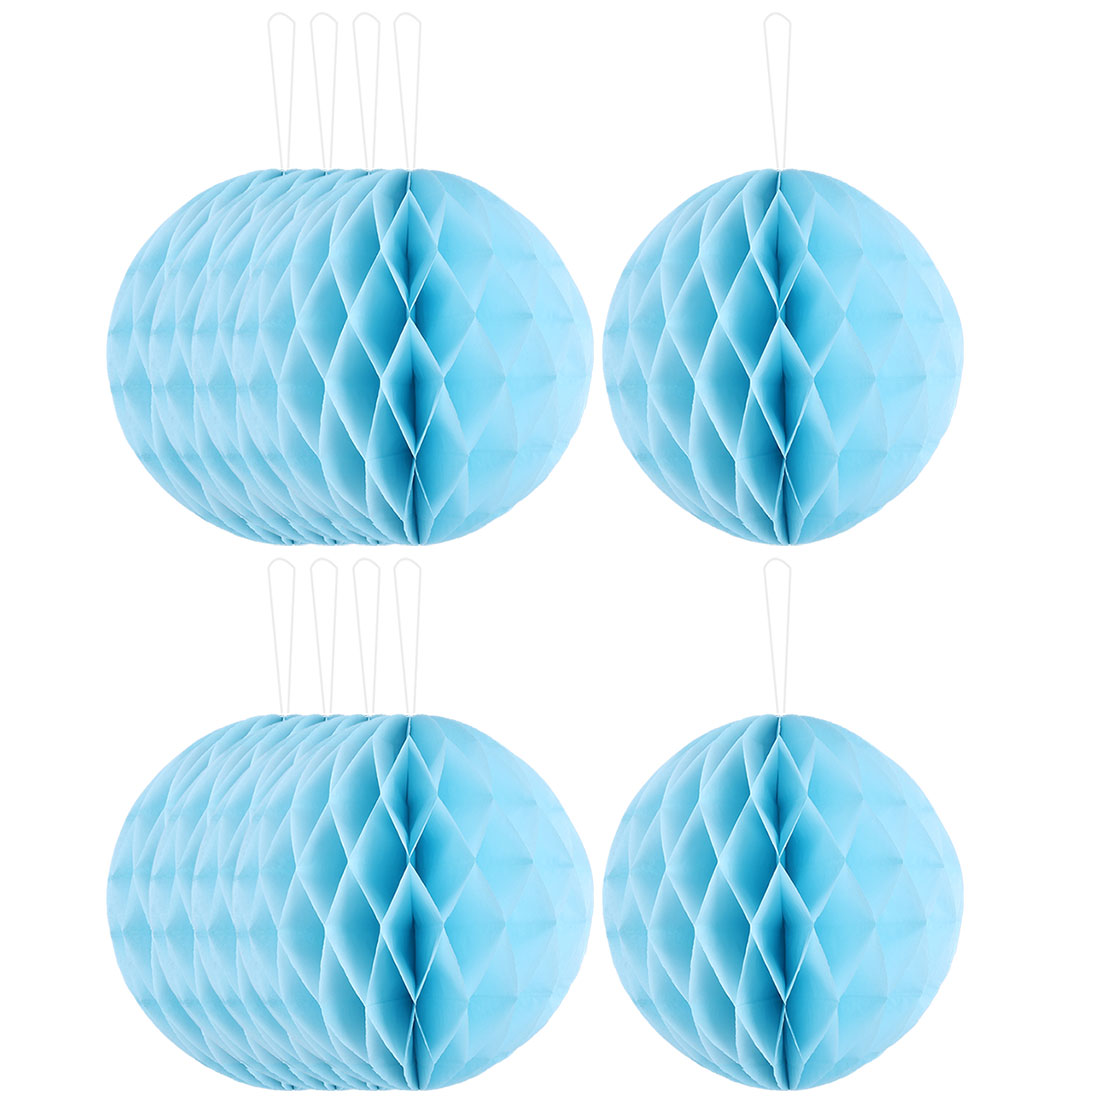 Household Party Paper Wall Window Door DIY Decoration Honeycomb Ball Sky Blue 12 Inch Dia 10 Pcs